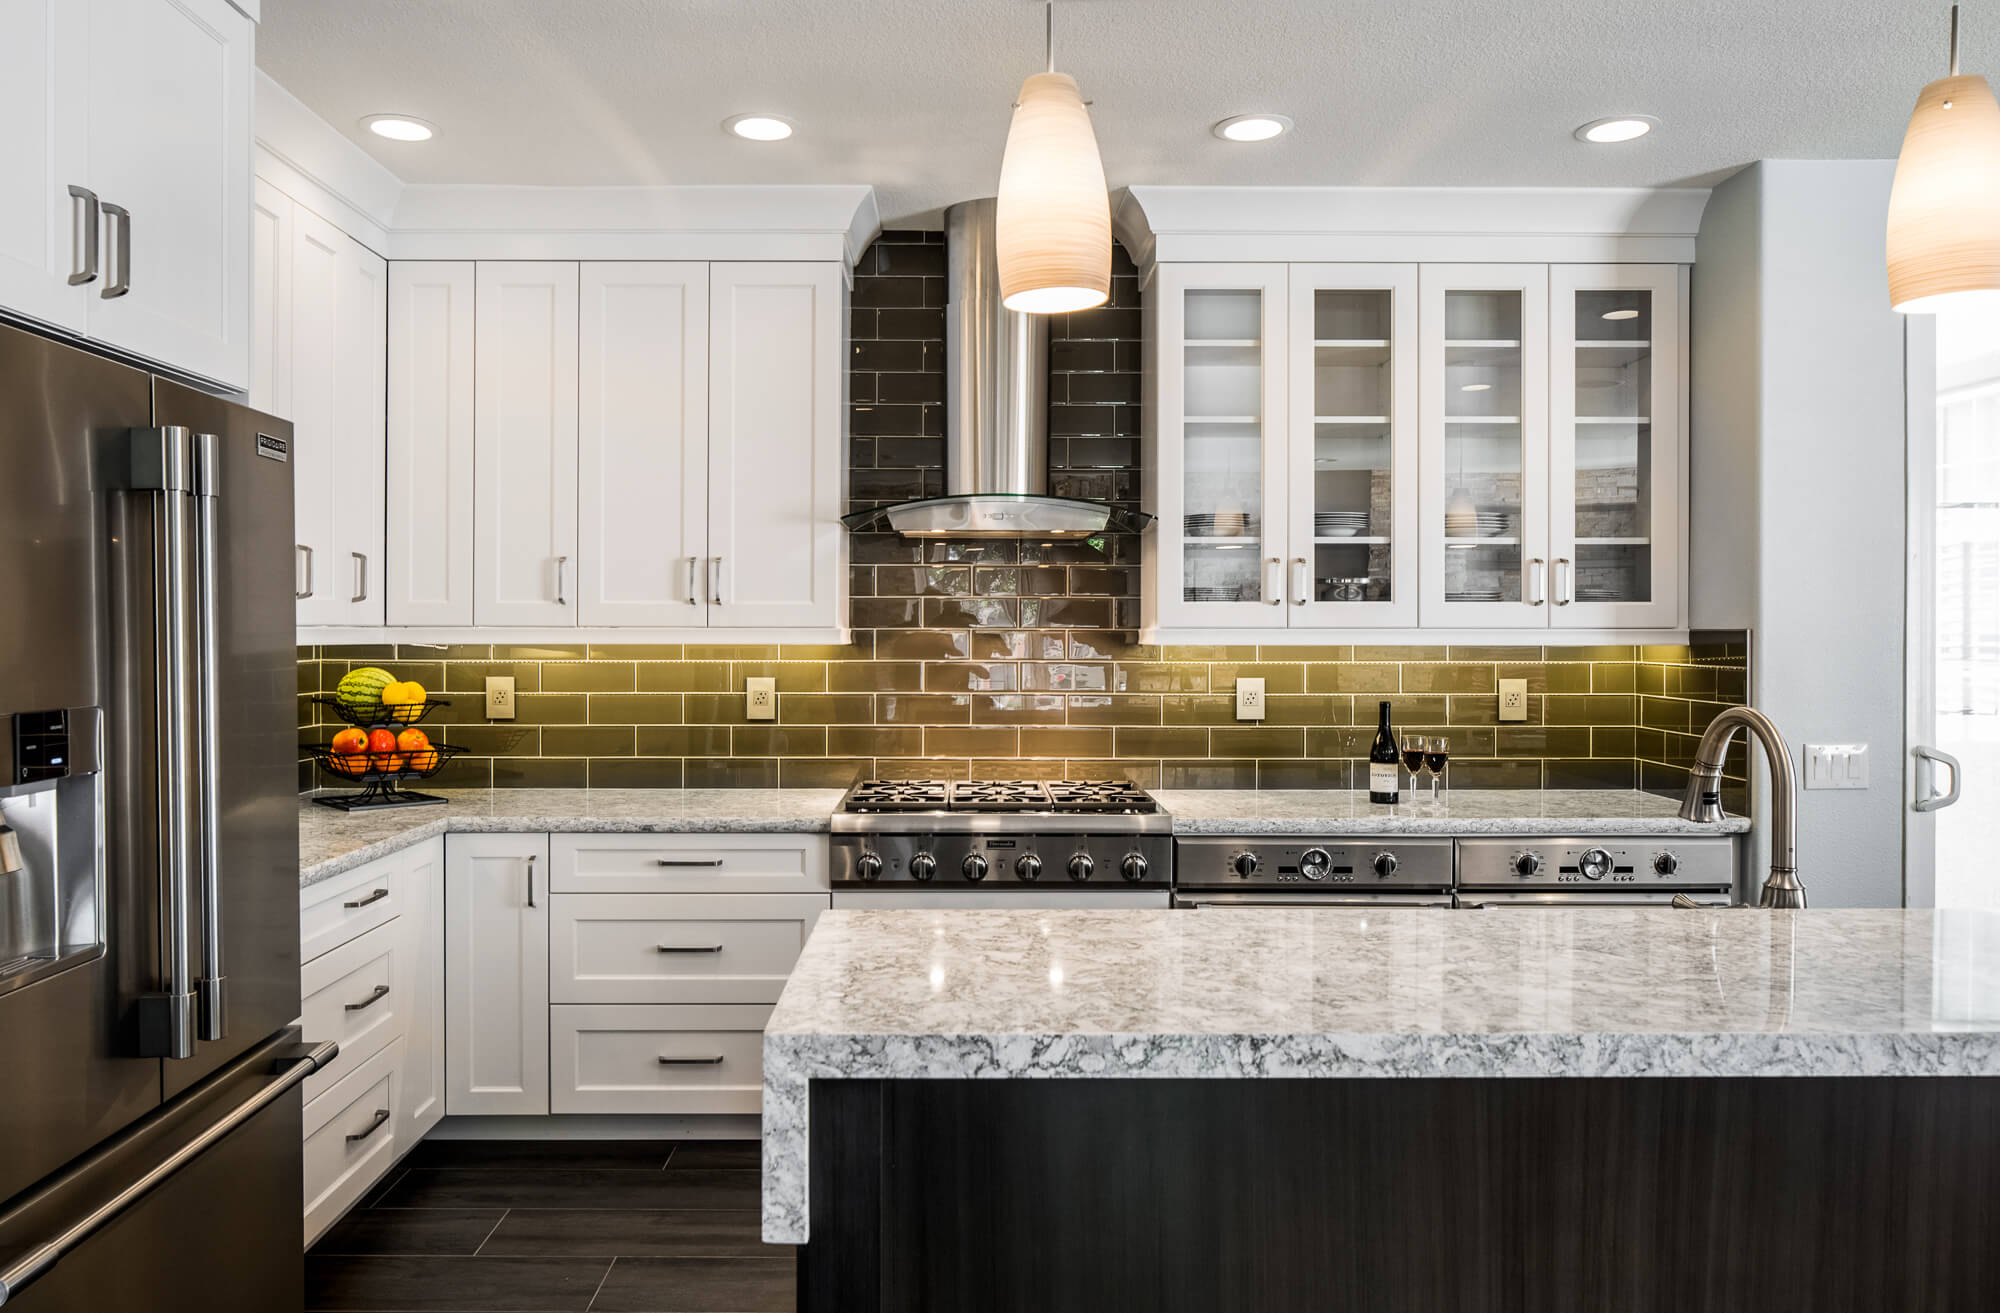 orange county home remodeling and home improvement services kitchen remodel must haves